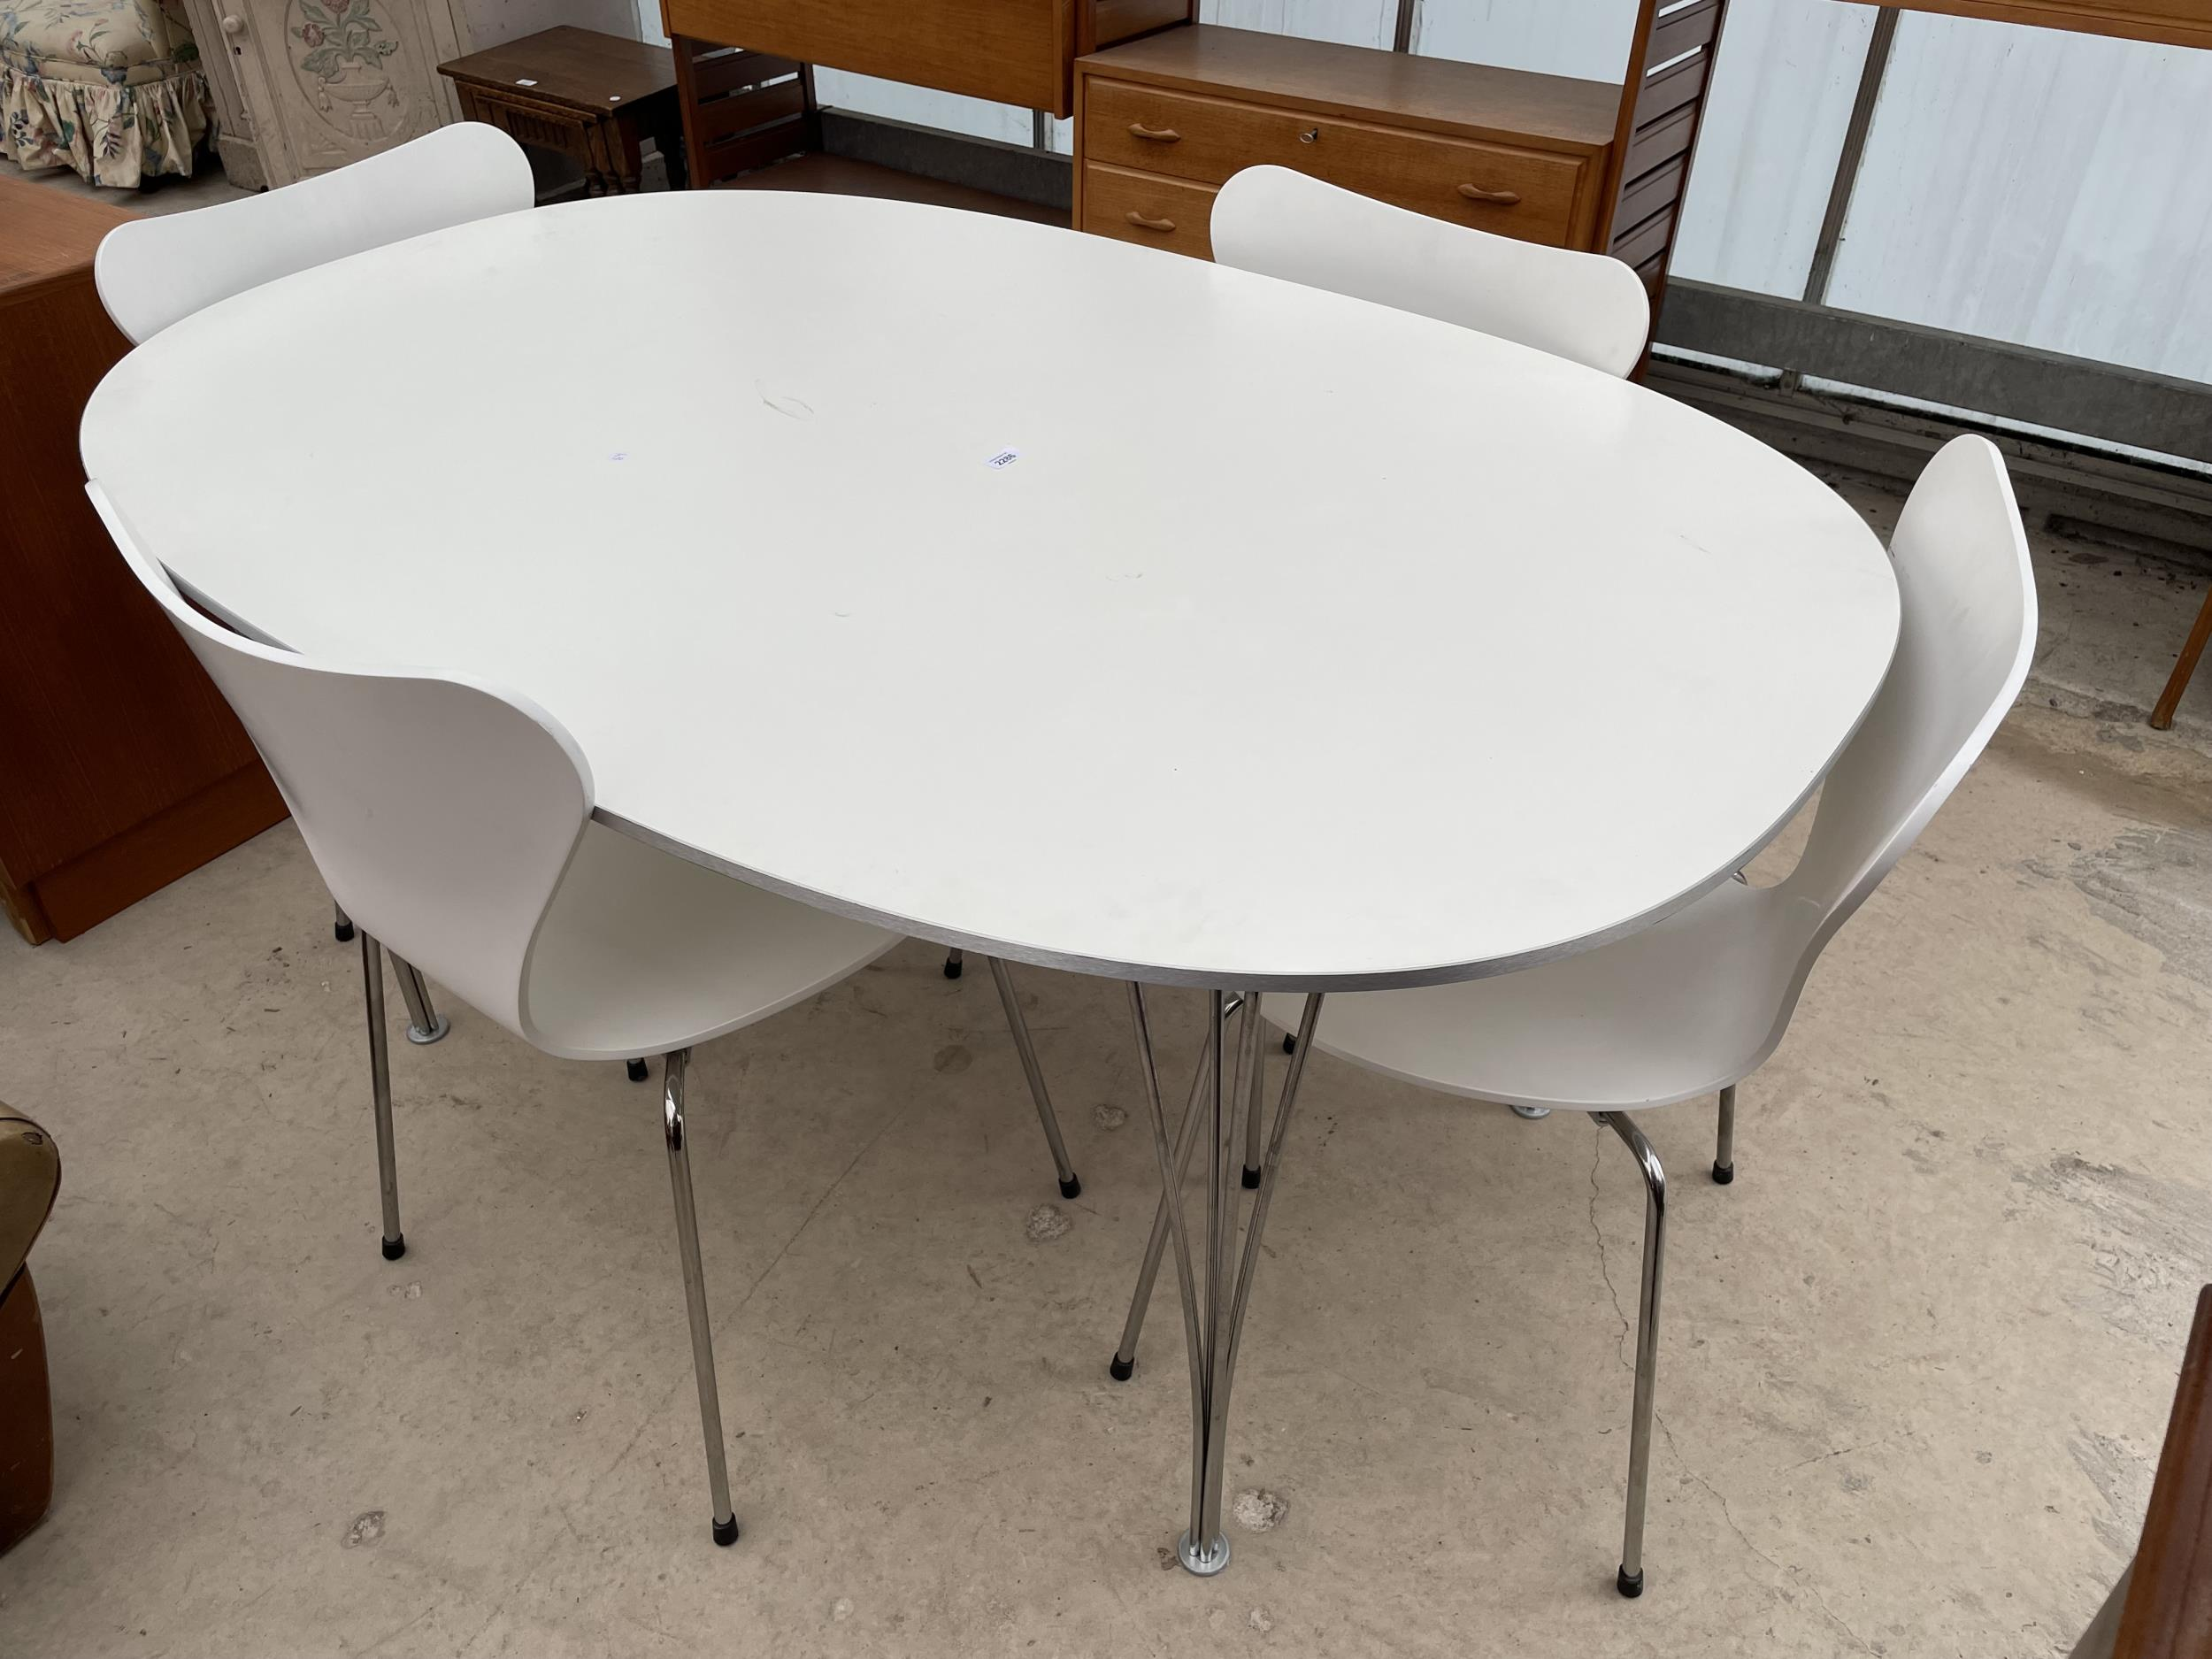 A WHITE OVULAR DINING TABLE BEARING LABEL 'MADE IN DENMARK, REPUBLIC OF FRITZ HANSEN DESIGN: PIET